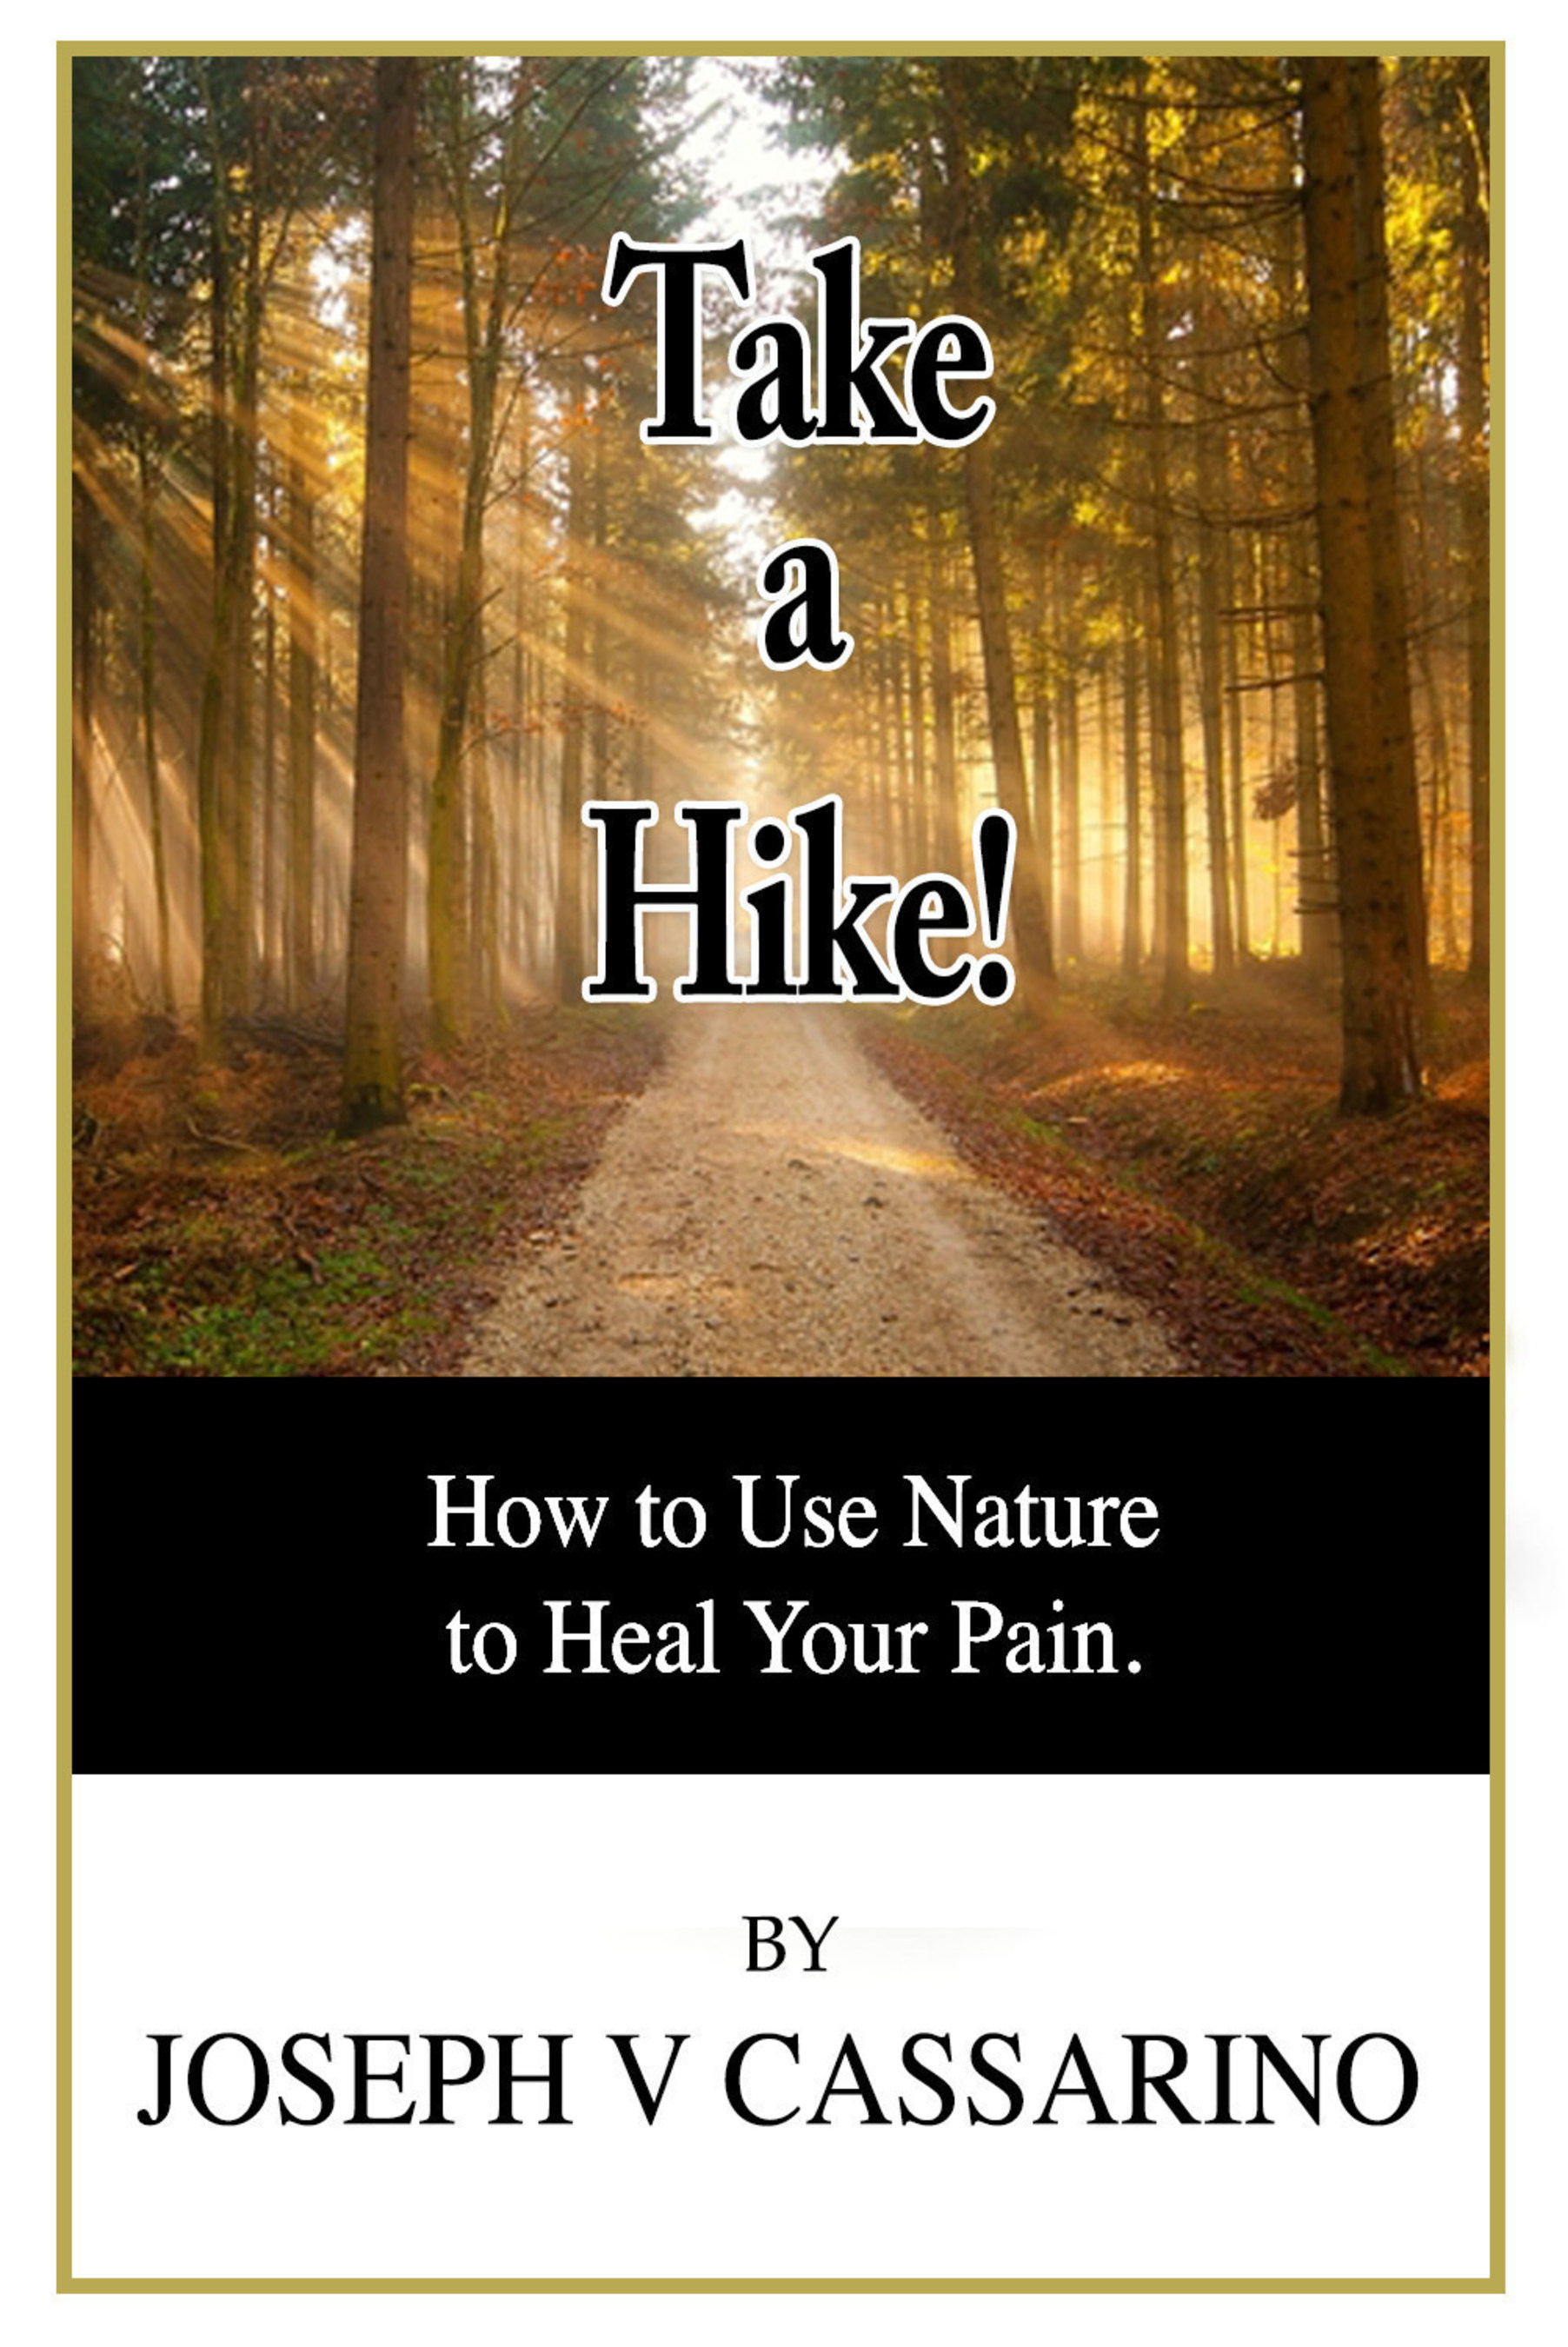 New eBook Collection Offers Effective Remedies To Heal Heartbreak